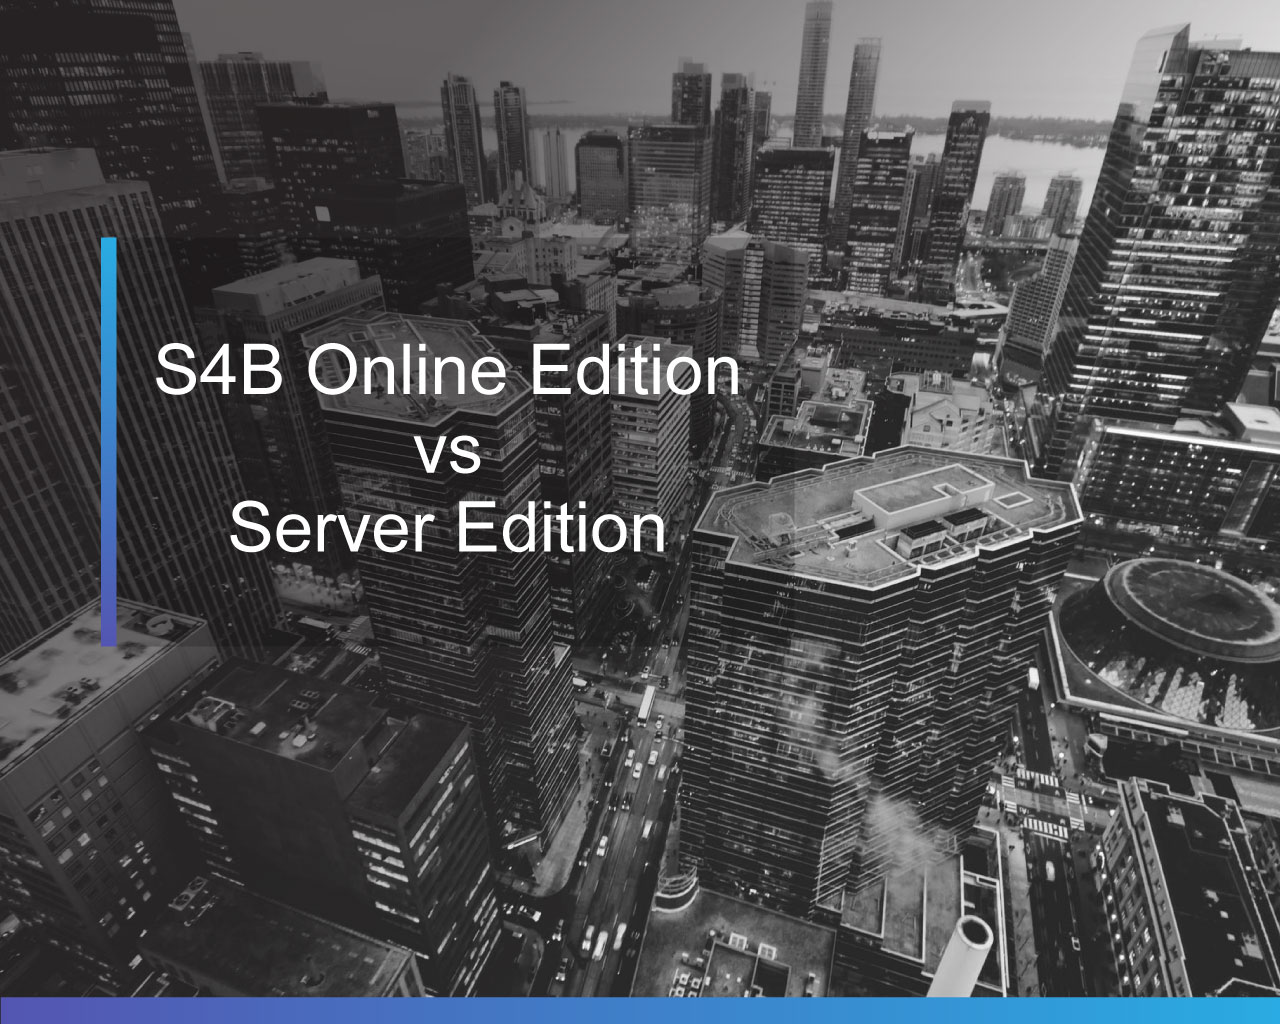 S4B Online Edition vs Server Edition